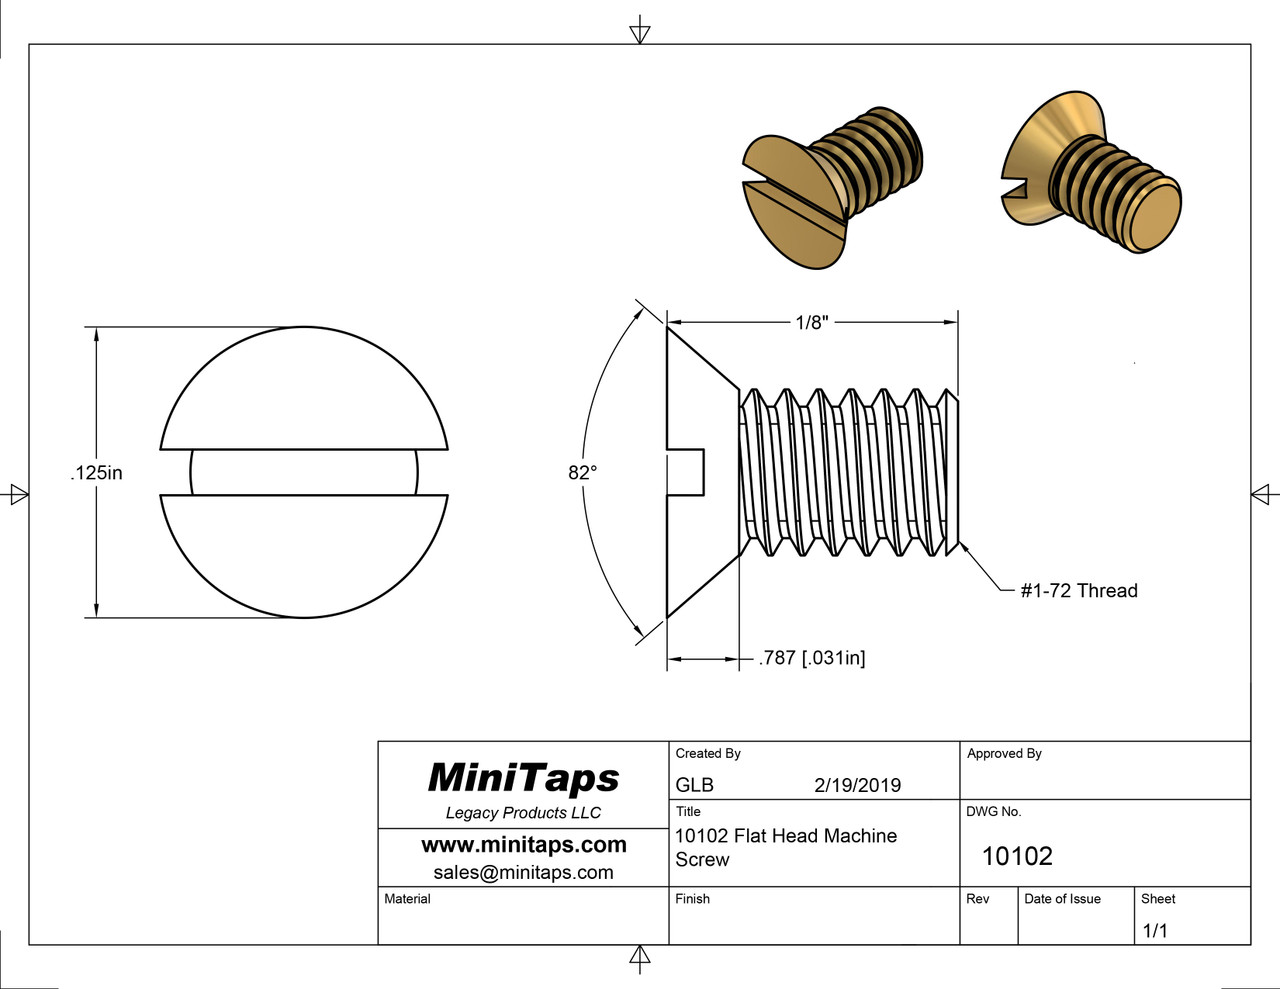 """1-72 Flat Head Slotted Machine Screw, Length 1/8"""", Full Thread to Under Head, Brass, Price is for 100 Pieces."""